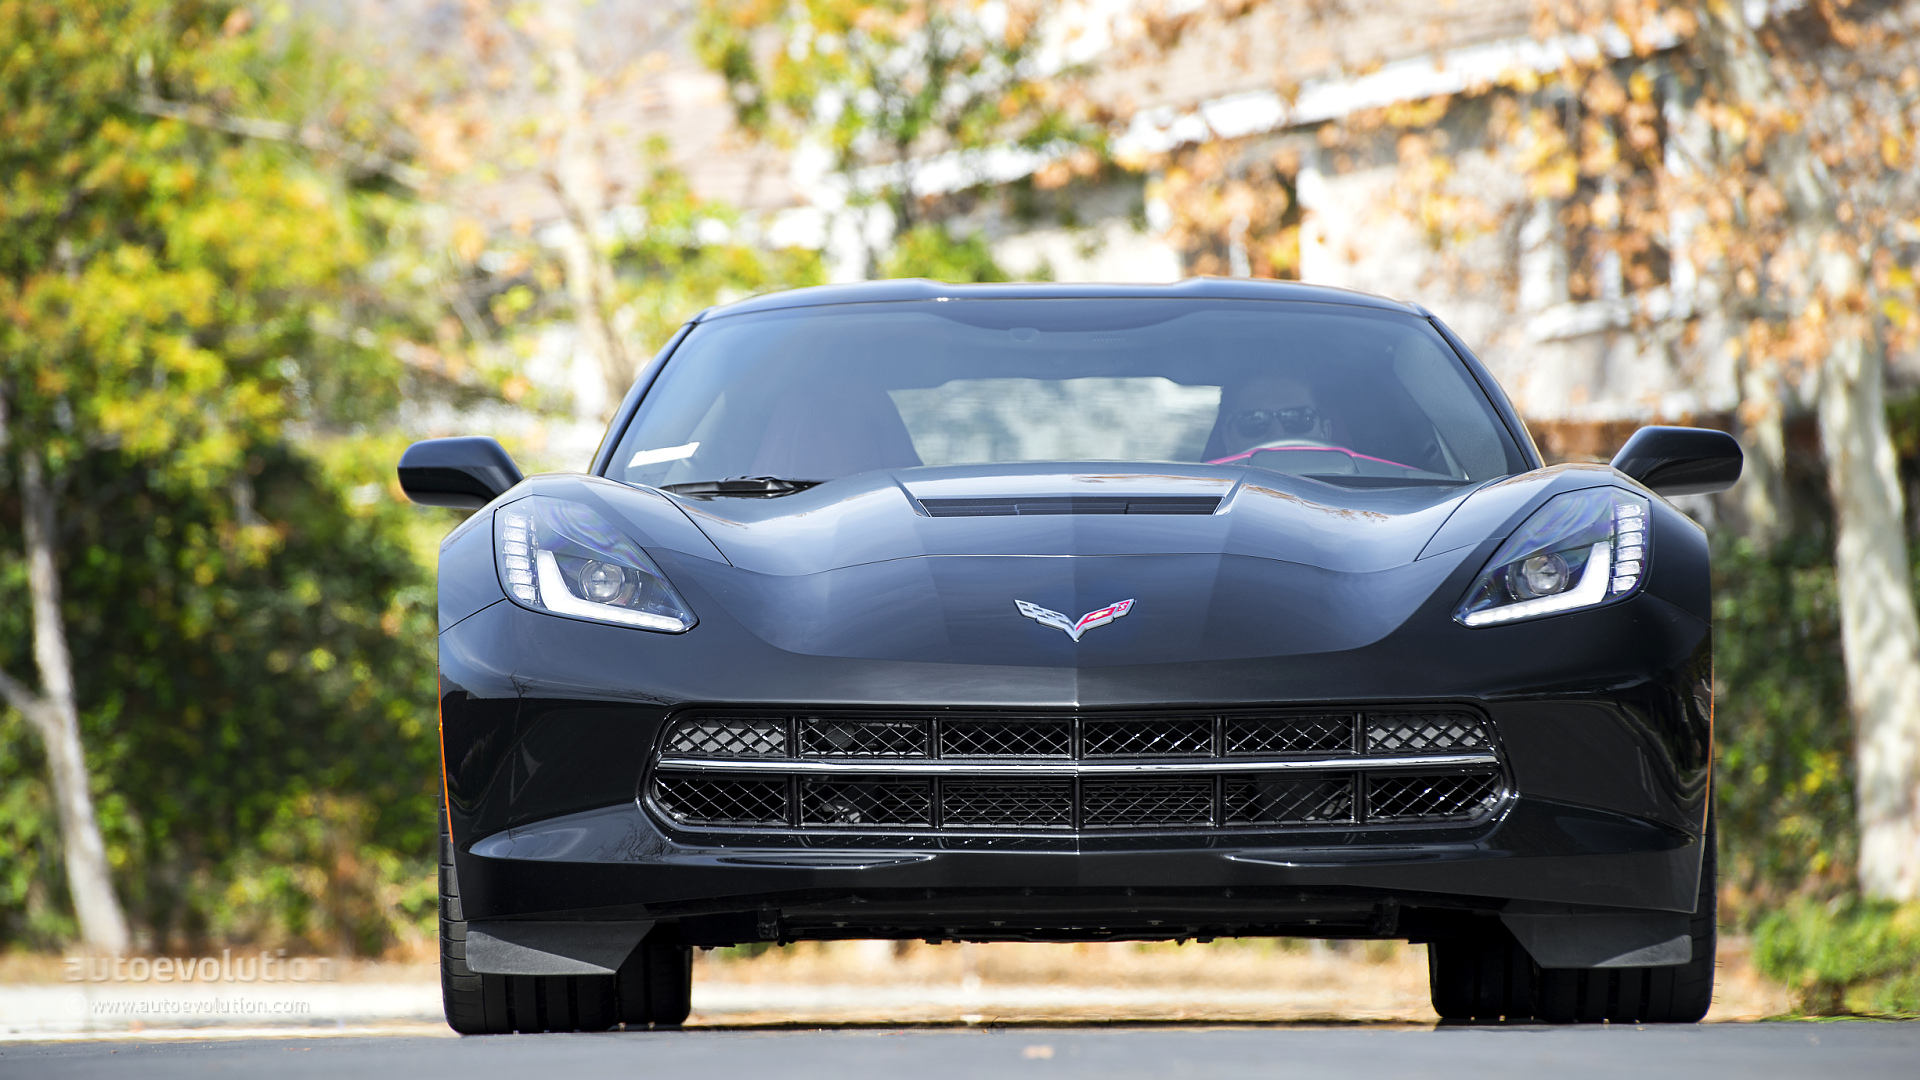 Chevrolet Corvette Stingray C7 Outsells C6 By A Huge Margin